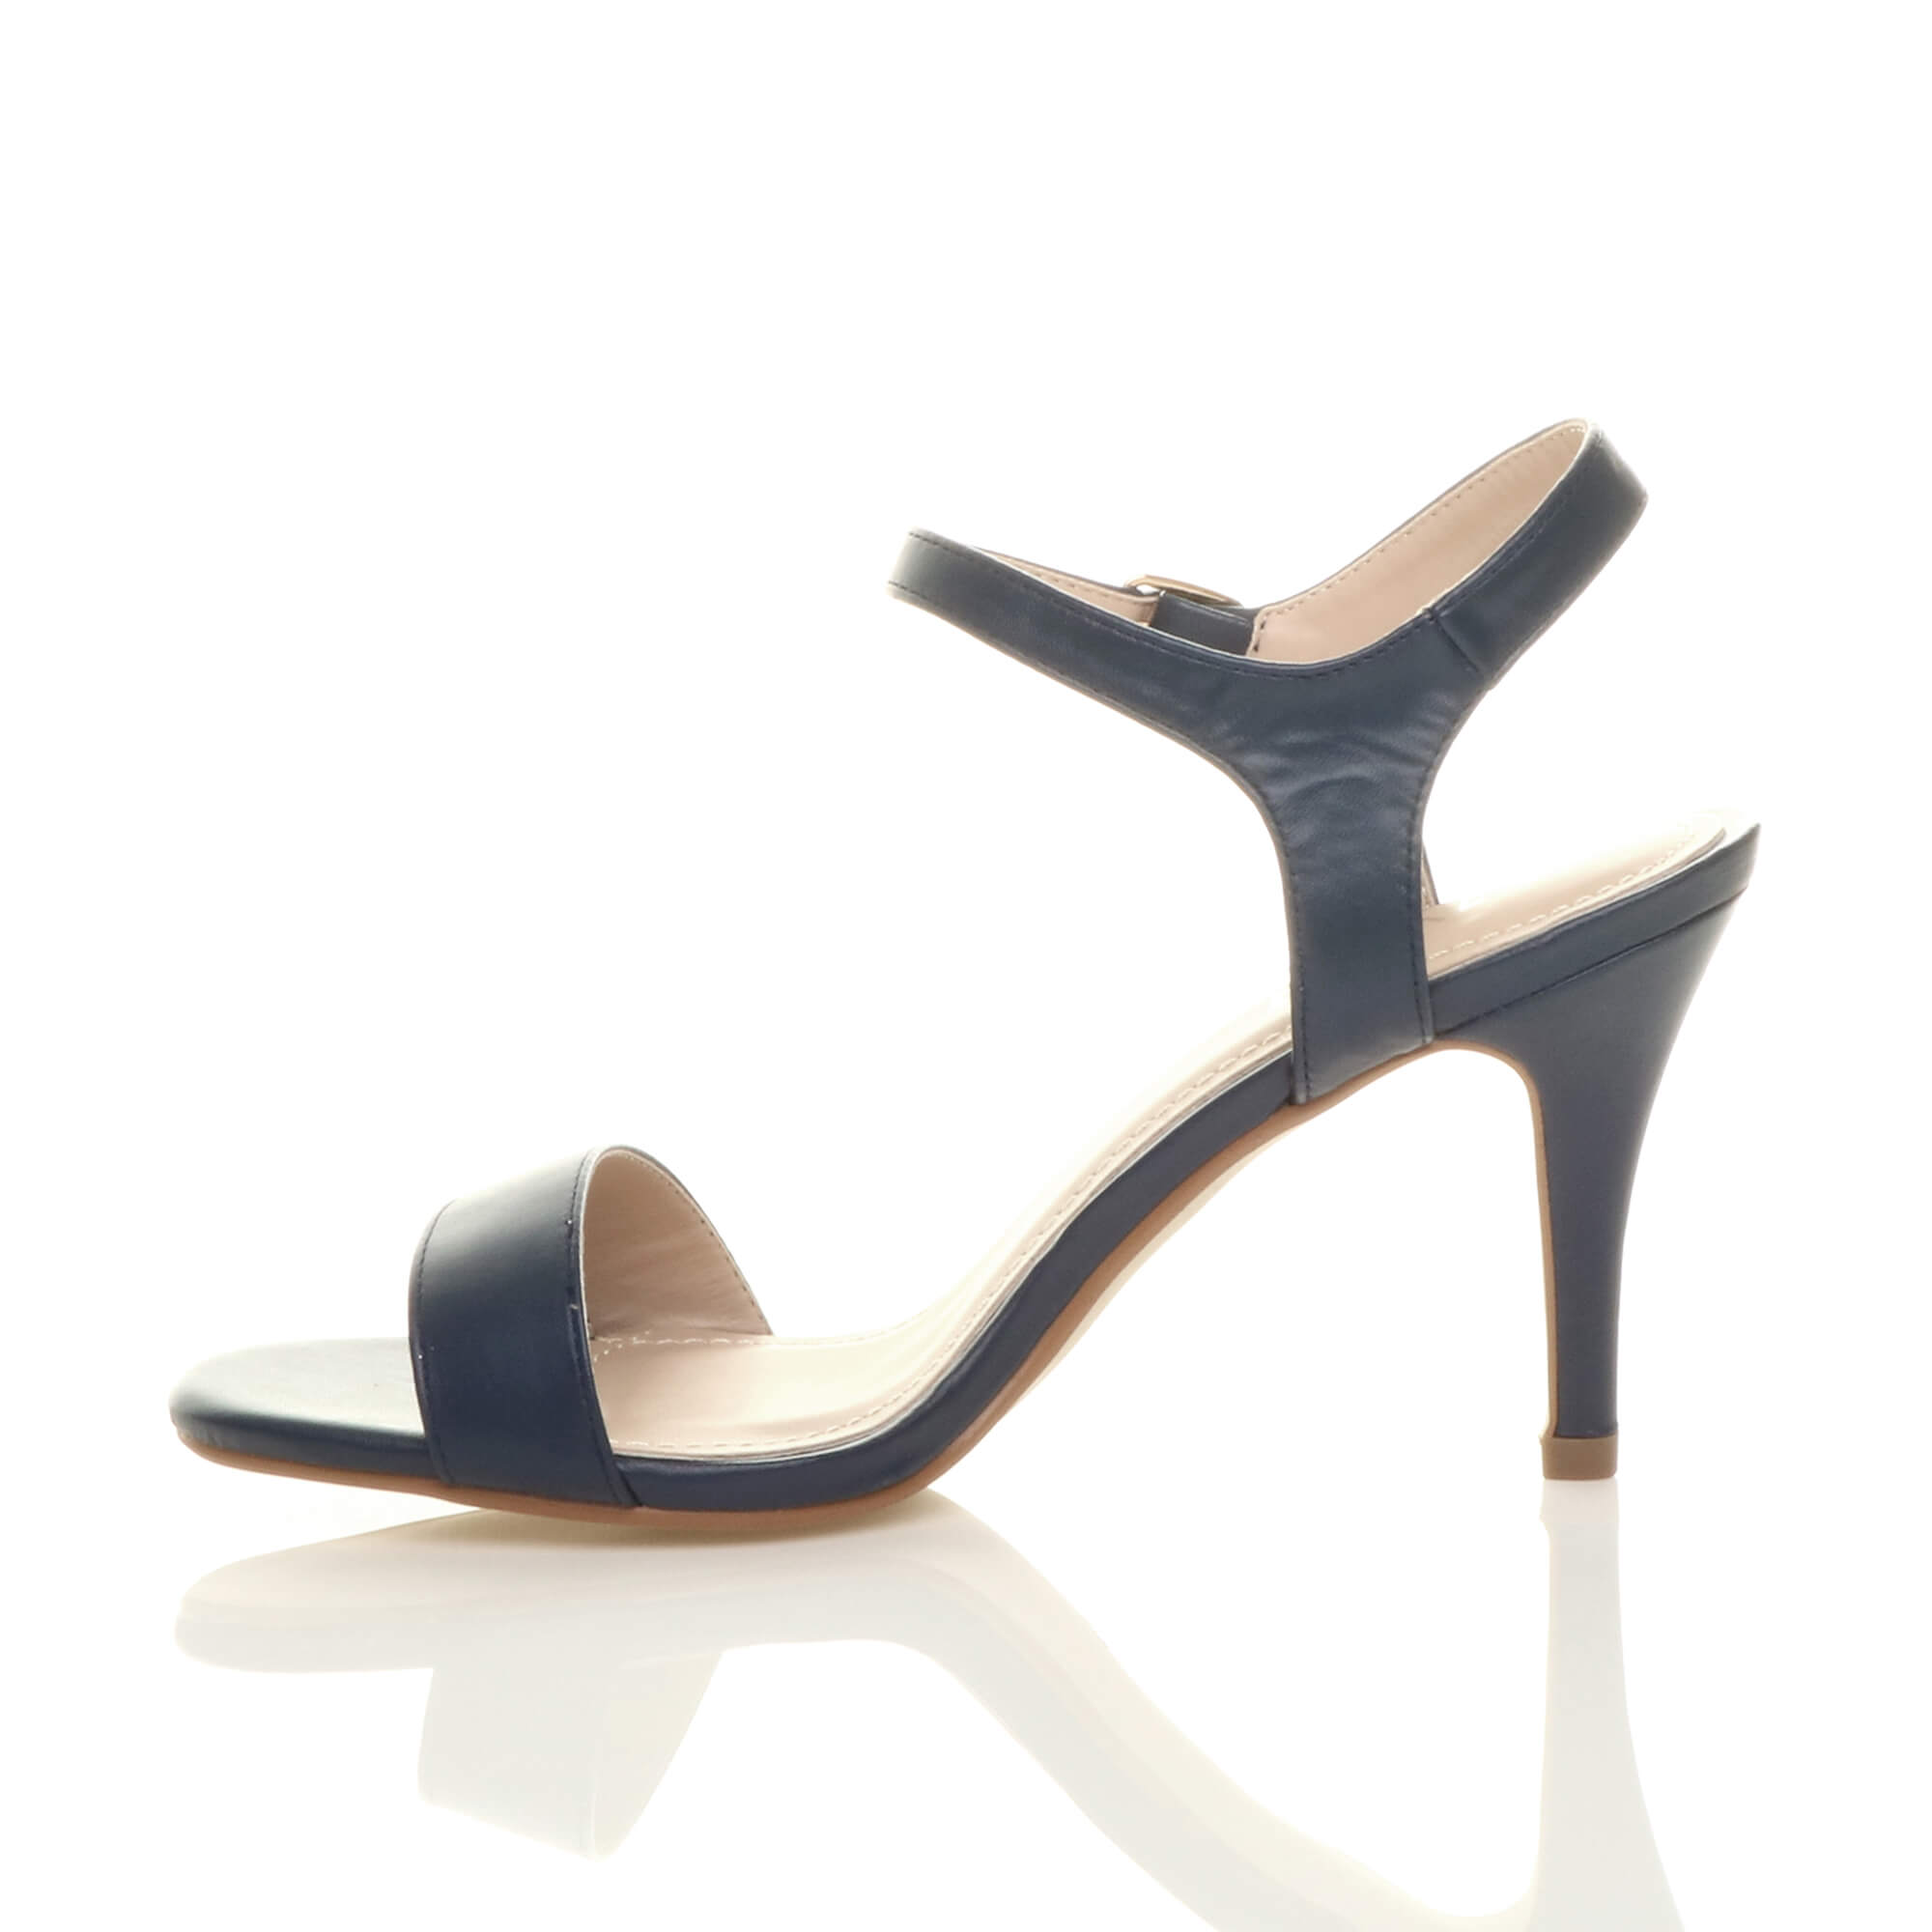 WOMENS-LADIES-HIGH-HEEL-BUCKLE-STRAPPY-BASIC-BARELY-THERE-SANDALS-SHOES-SIZE thumbnail 67